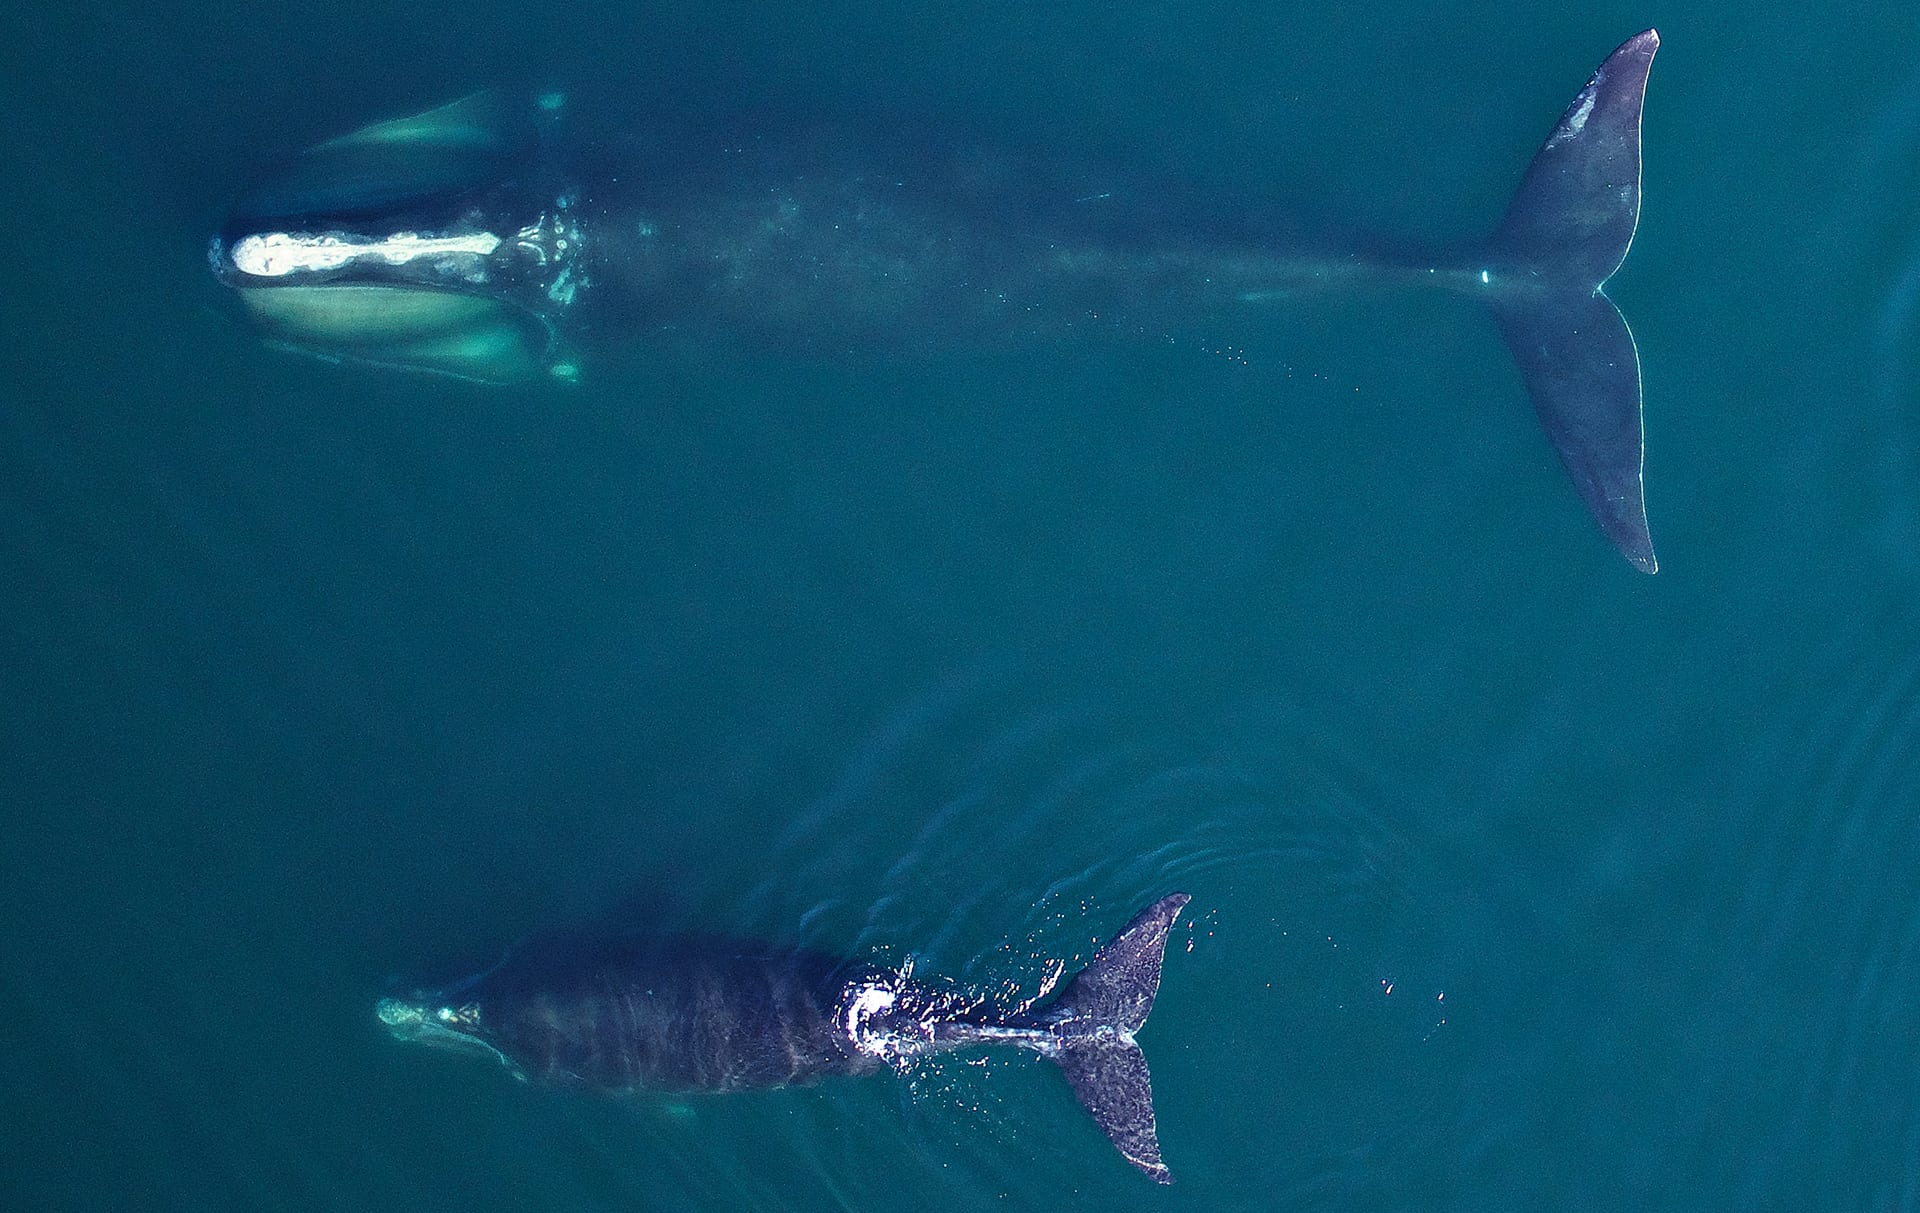 An adult female North Atlantic right whale feeds in Cape Cod Bay in early April 2019, accompanied by a young calf. Image obtained non-invasively from an unmanned drone flying >100ft above the whale, authorized by Research Permit #21371 issued by the National Marine Fisheries Service. Images acquired using an APH22 hexacopter, Aerial Imaging Solutions: Pilot Jacob Barbaro & CoPilot Brandon Tao, NOAA NMFS Southwest Fisheries Science Center, PI Michael Moore, WHOI.